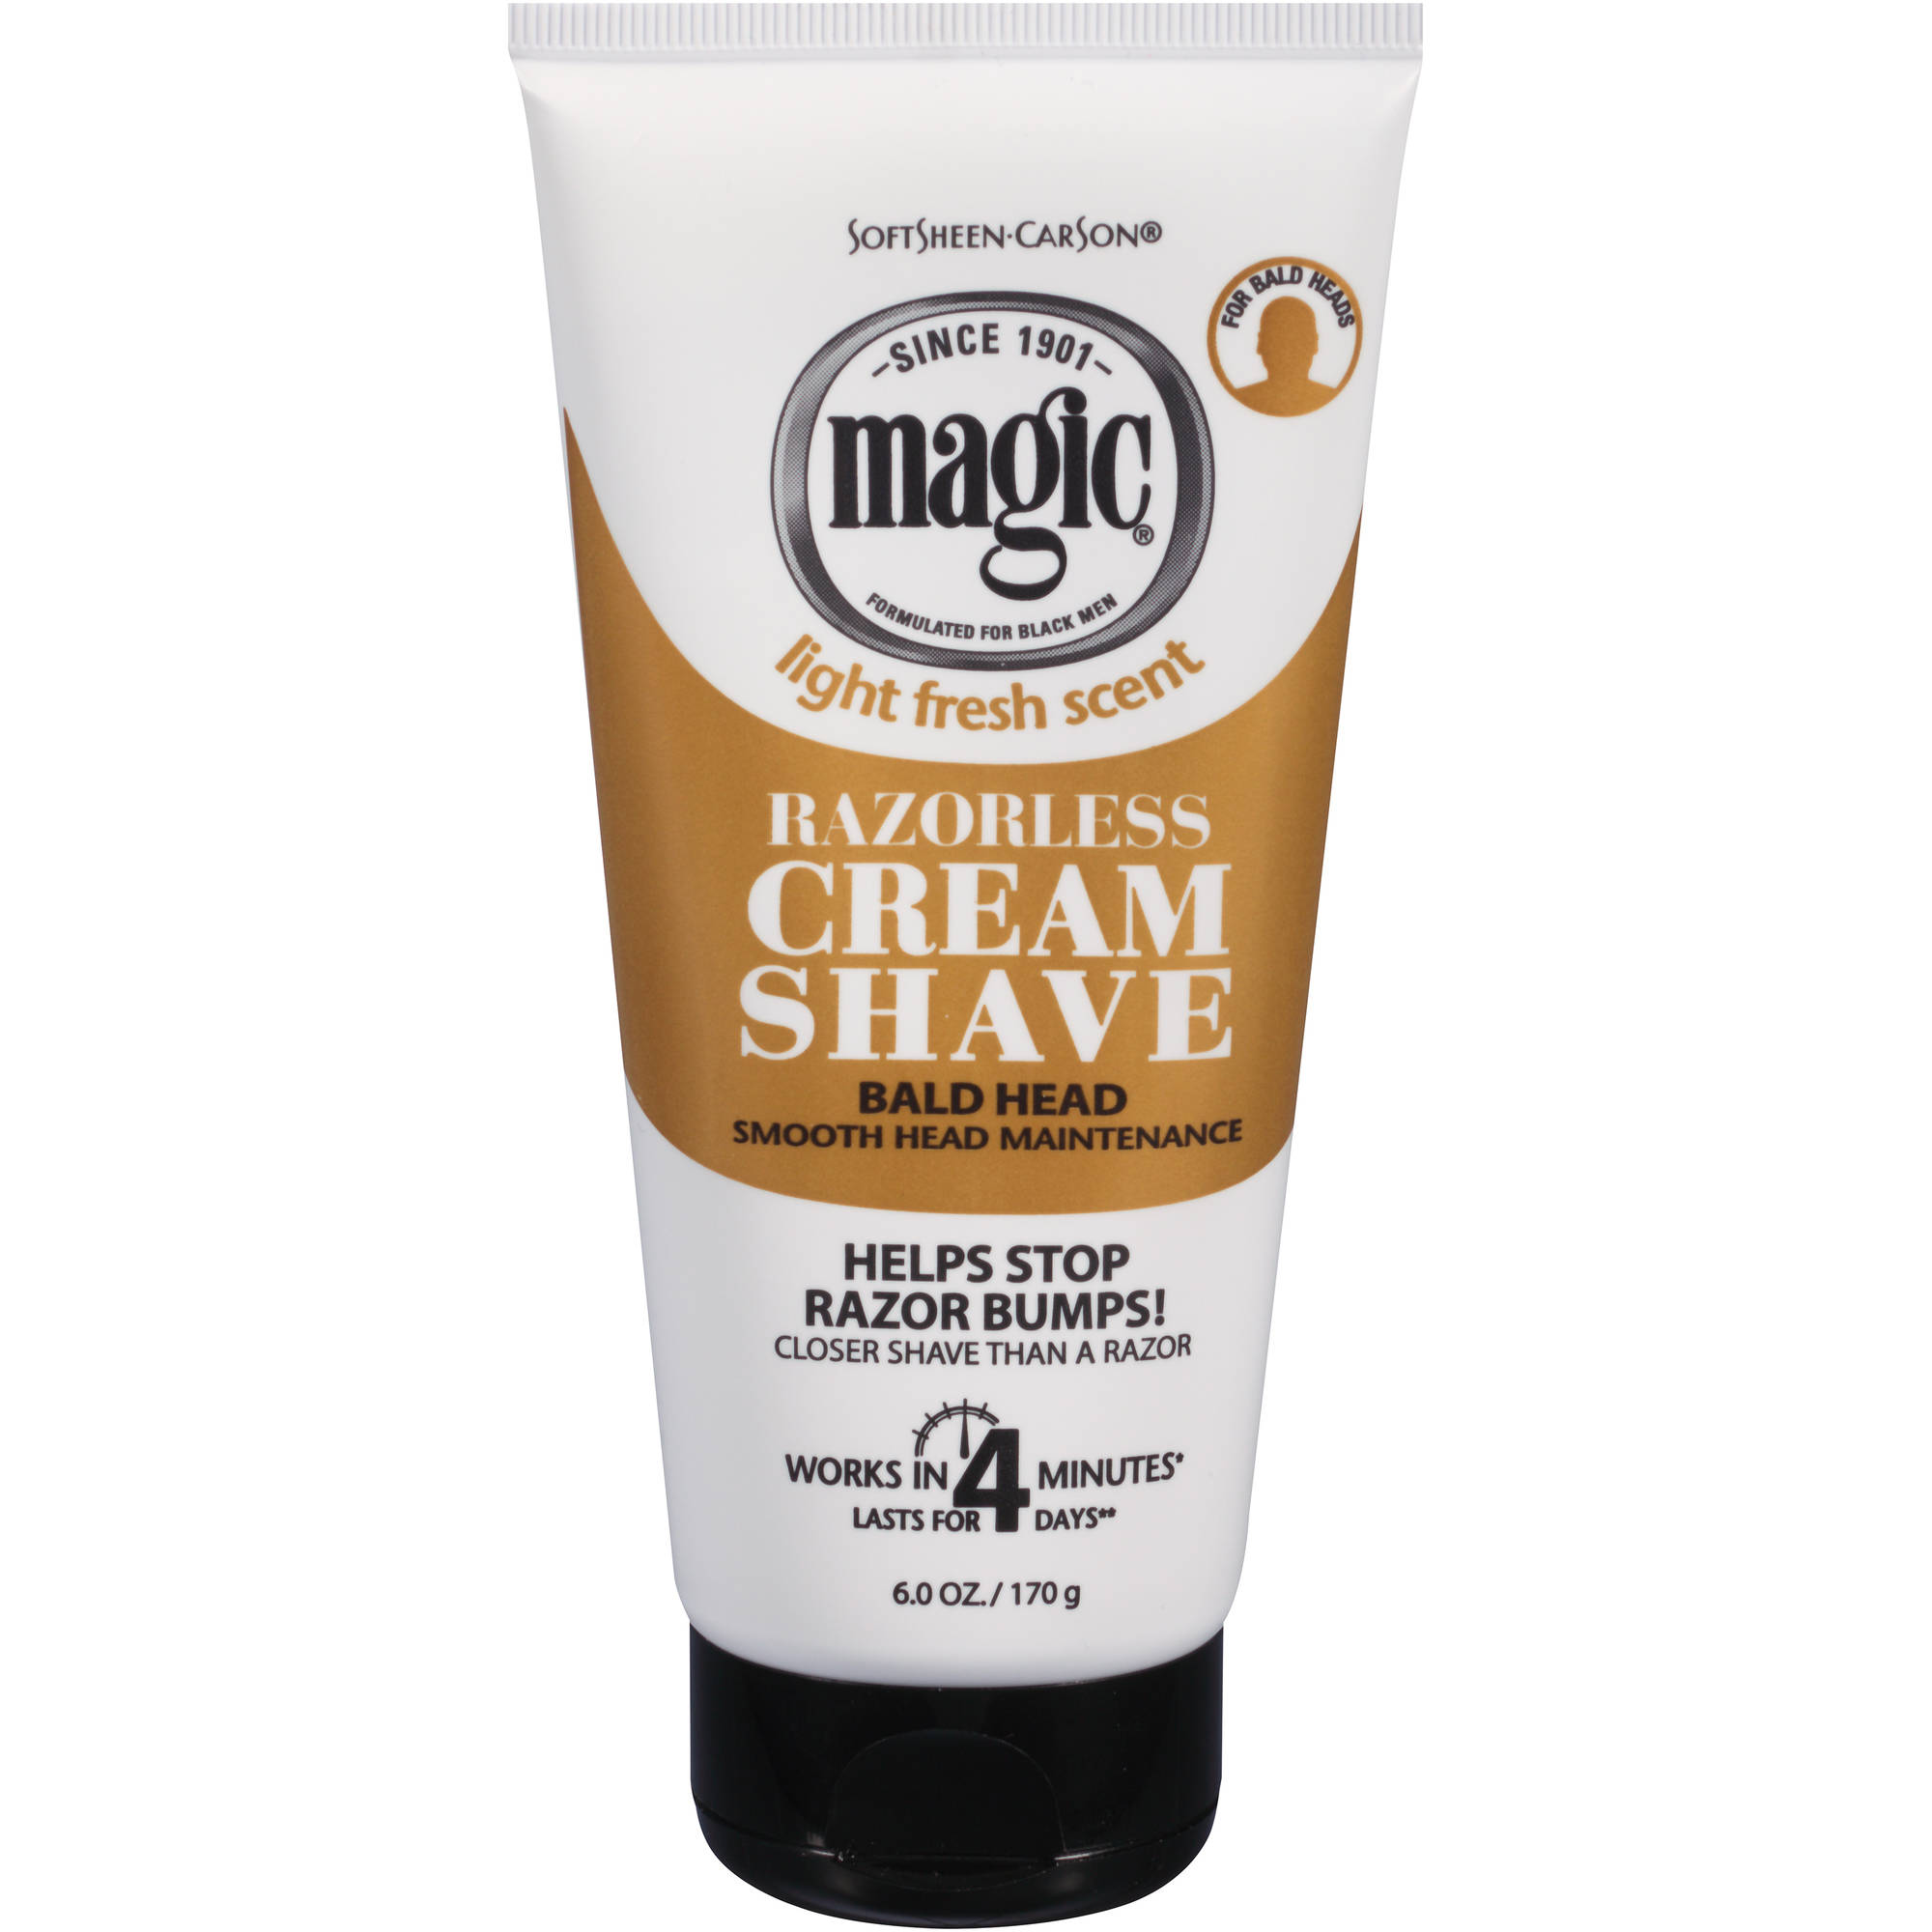 SoftSheen-Carson Magic Razorless Cream Shave, Bald Smooth Head Maintenance, 6 Oz